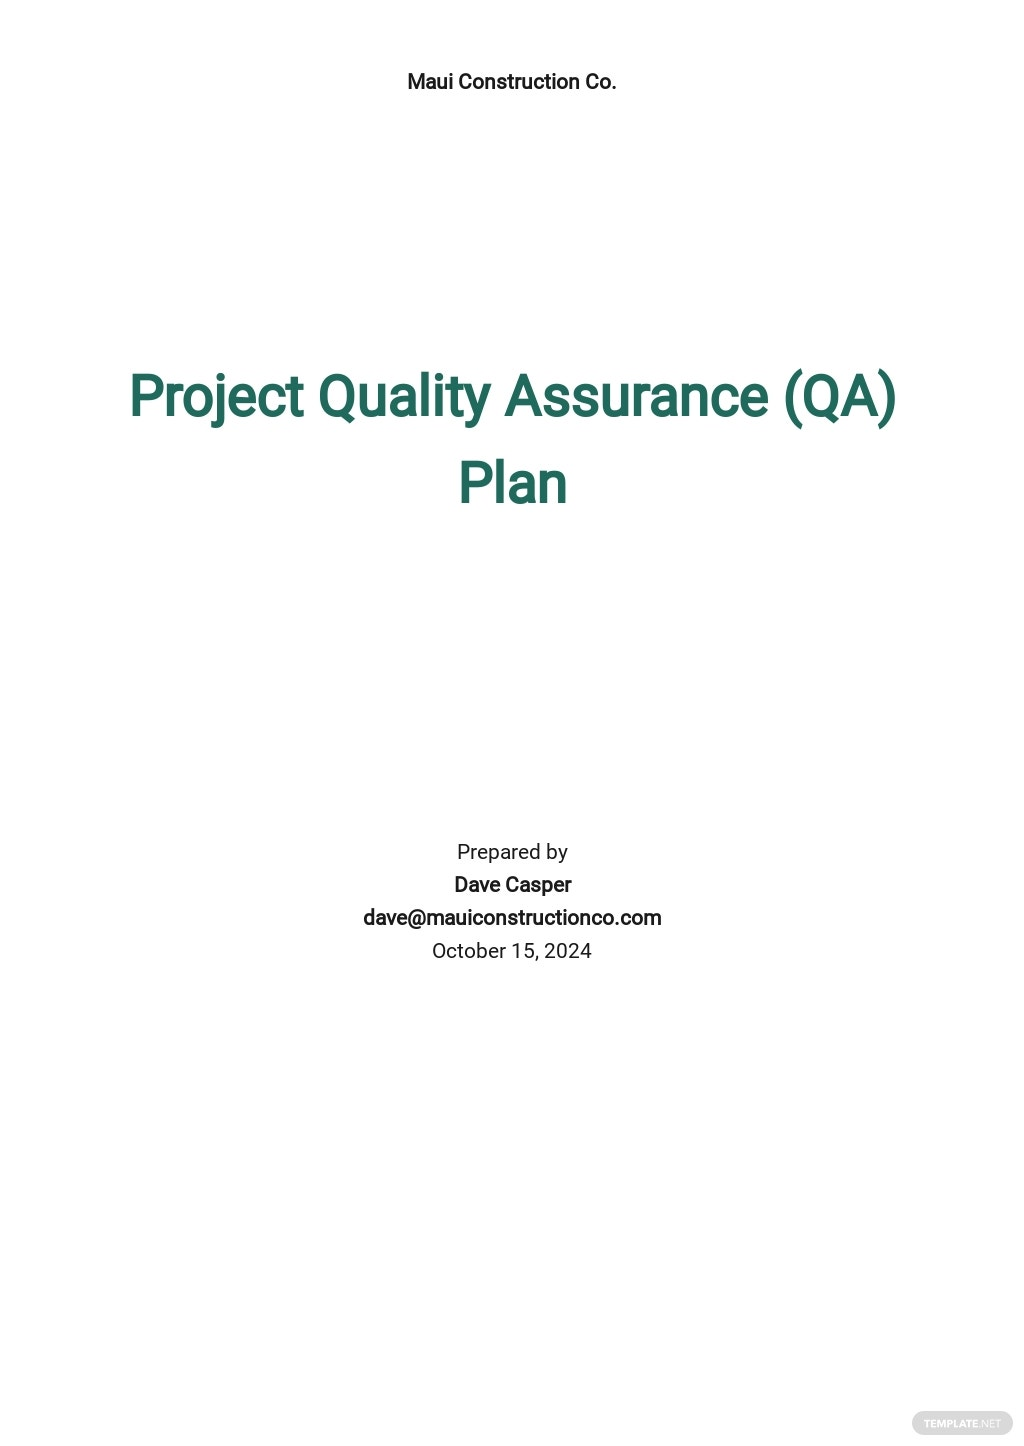 Project Quality Assurance Plan Template